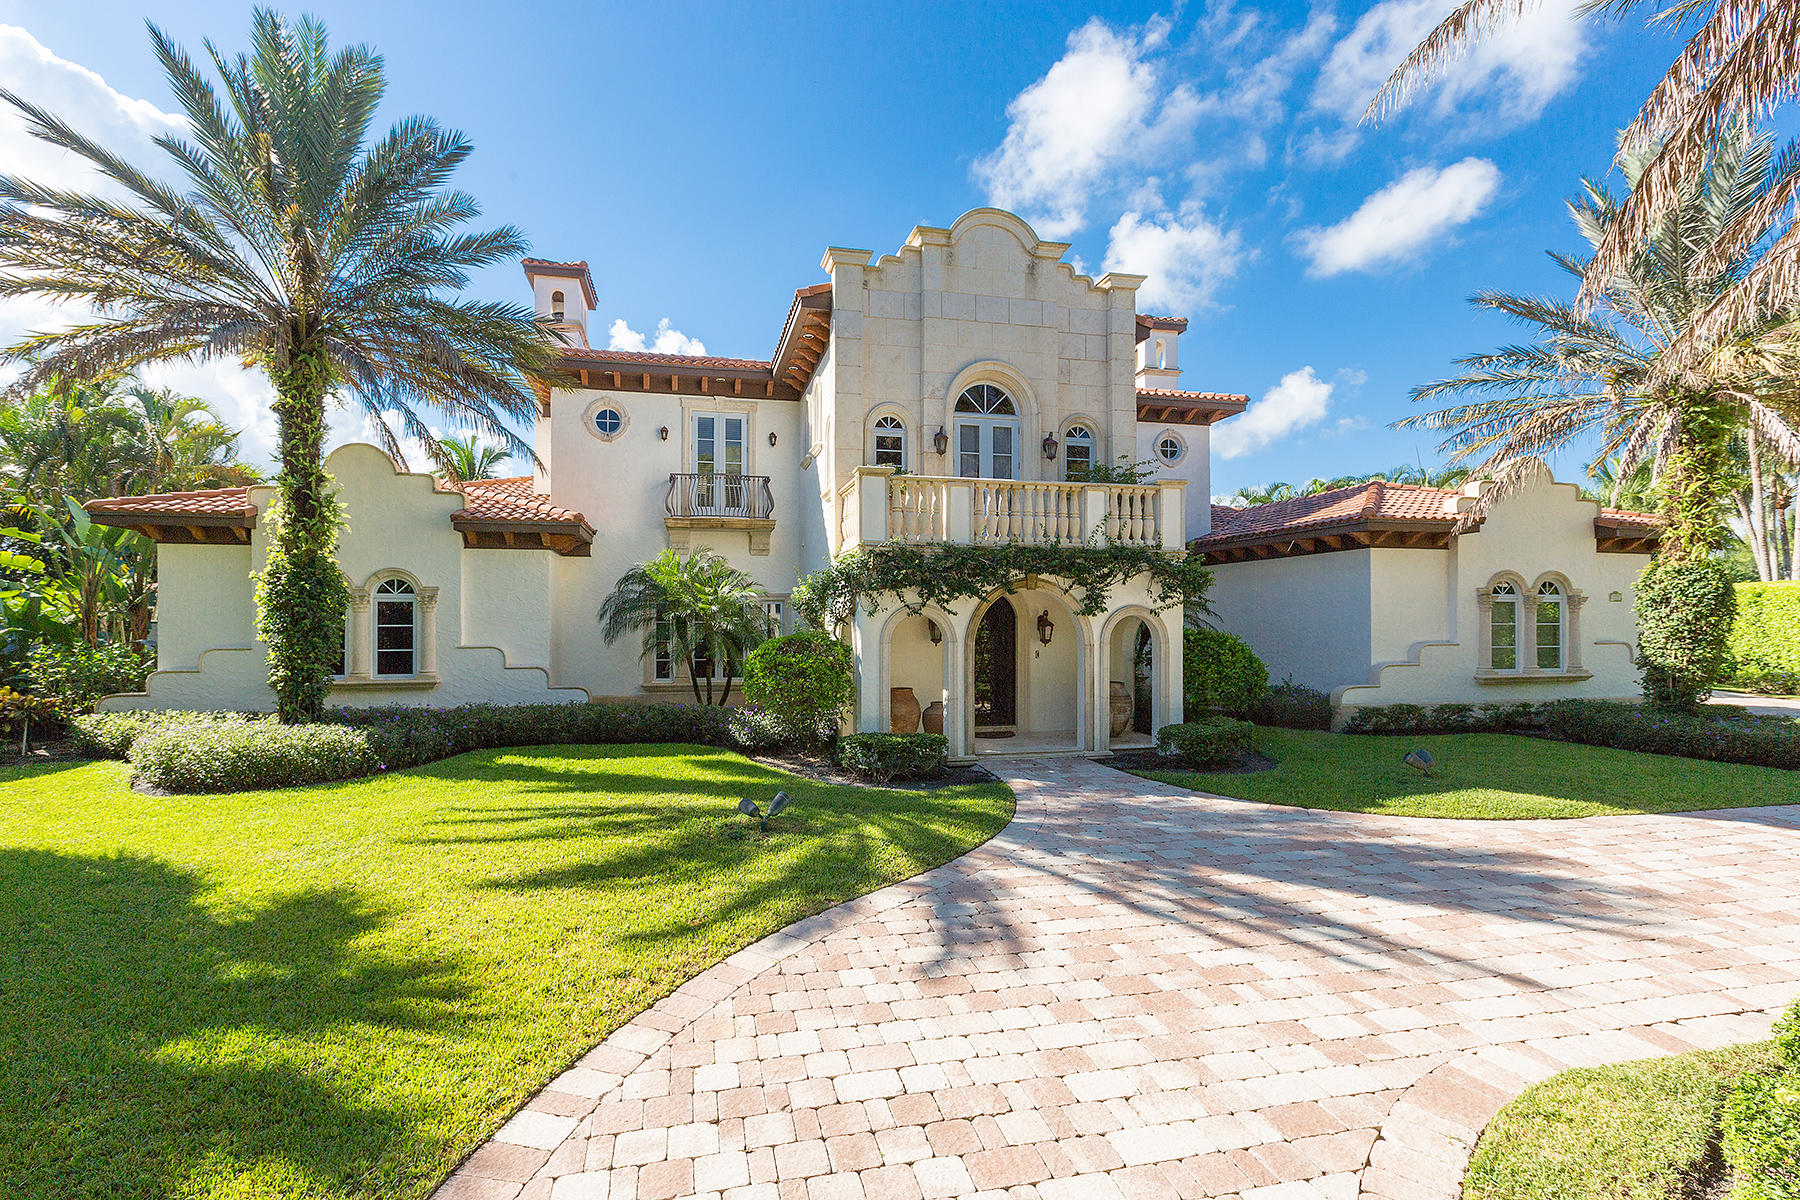 2731 Sheltingham Drive, Wellington, Florida 33414, 4 Bedrooms Bedrooms, ,5.1 BathroomsBathrooms,Single Family,For Rent,Palm Beach Polo and Country Club,Sheltingham,RX-10466688